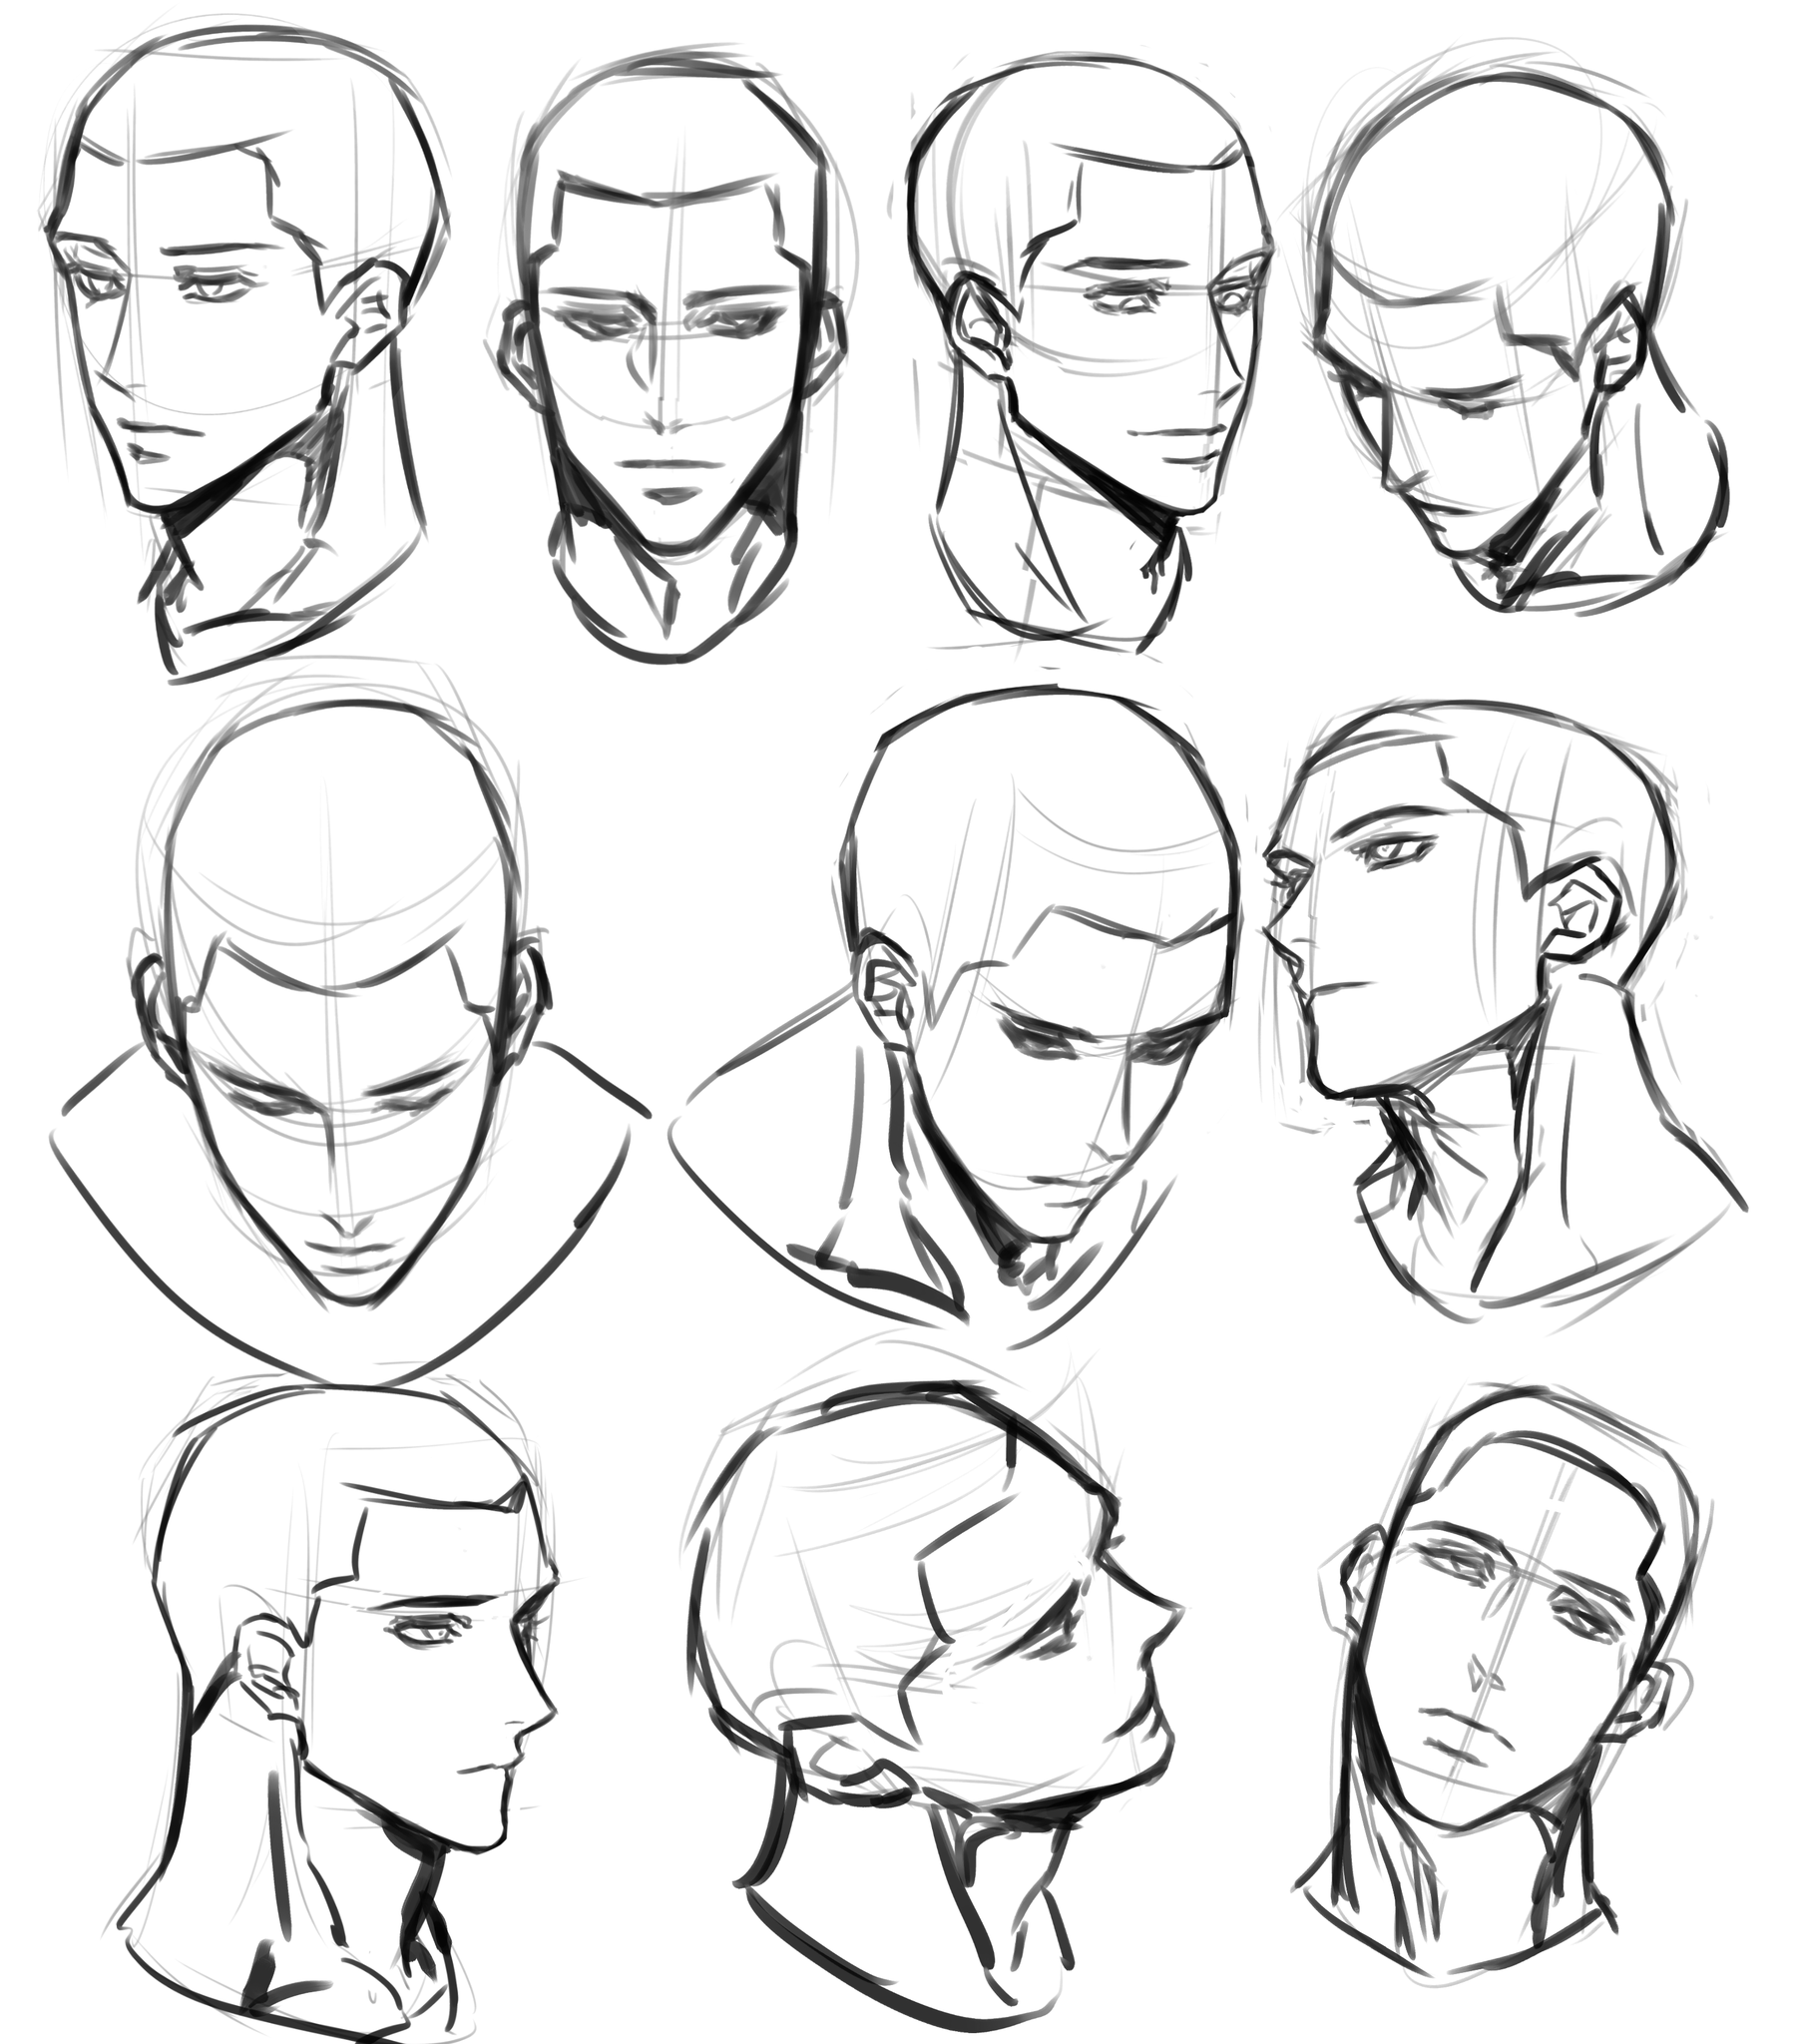 Pin By Camille Yu On M Drawing Expressions Face Drawing Reference Male Face Drawing Drawing Expressions